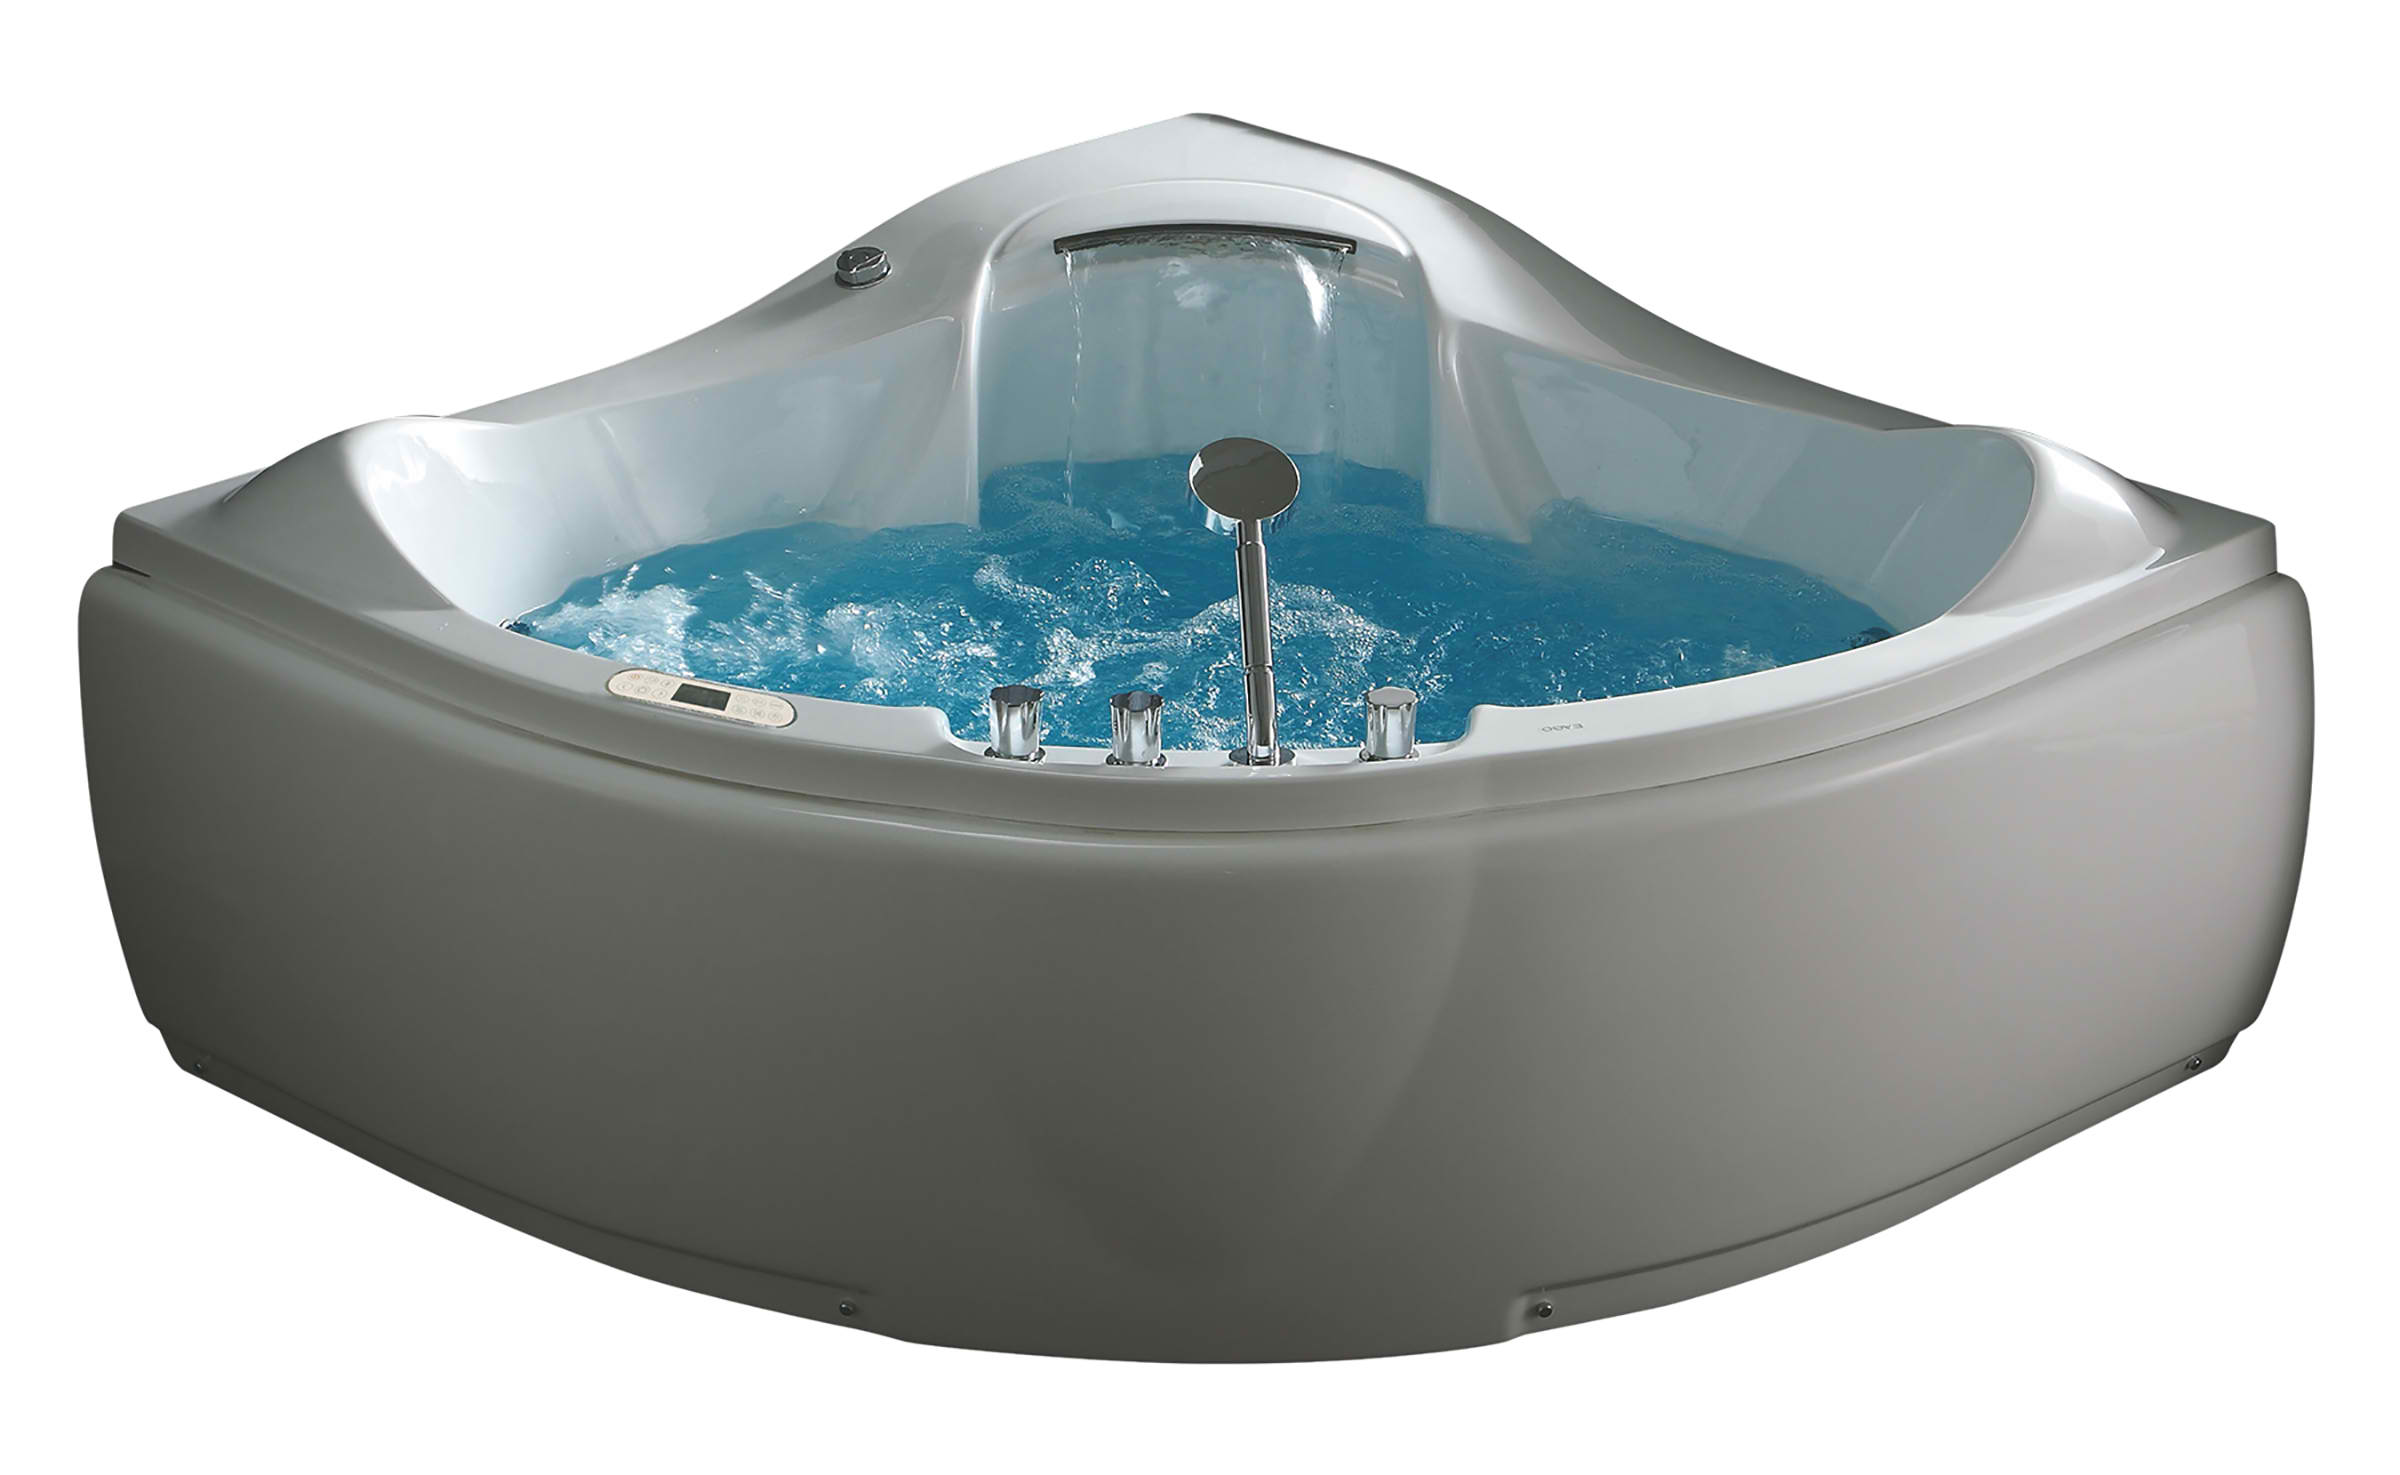 EAGO AM208ETL 5 ft Corner Acrylic White Waterfall Whirlpool Bathtub for Two